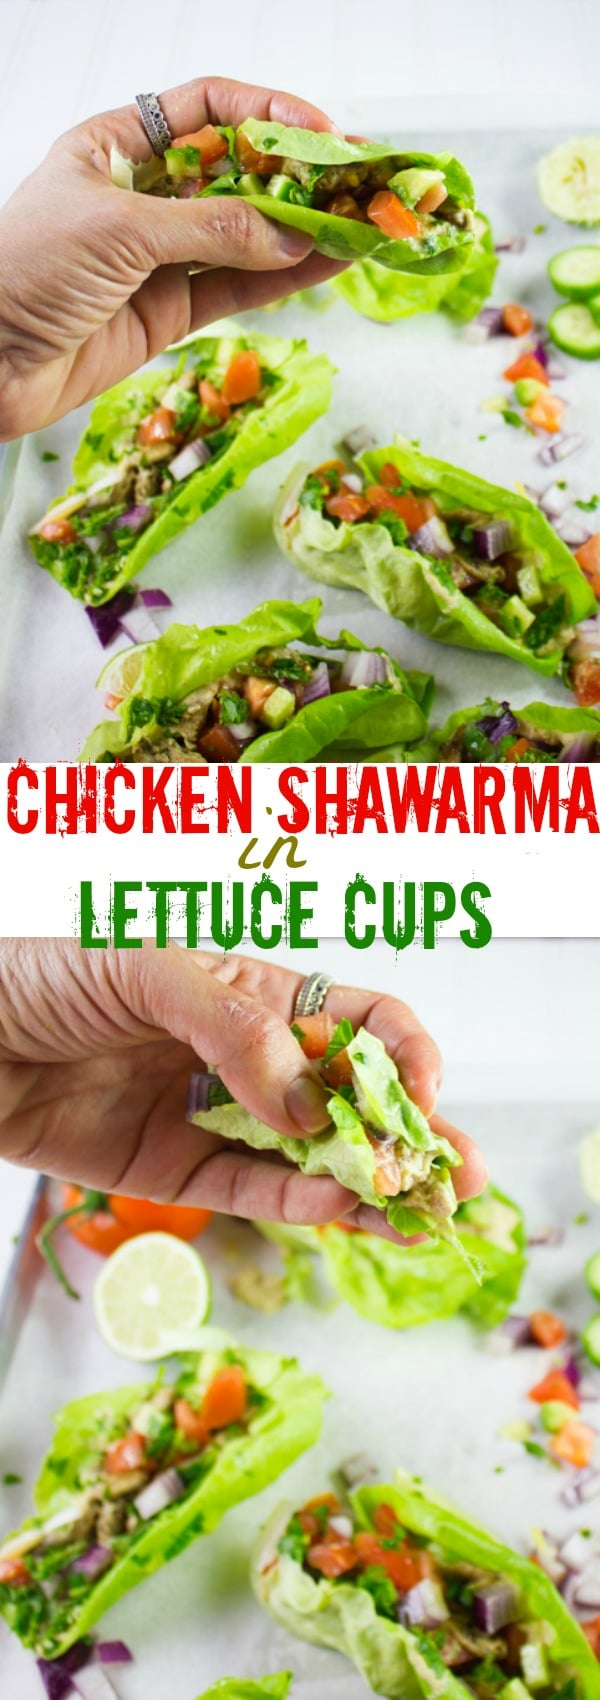 Craving succulent flavorful Chicken Shawarma? Serve these Chicken Shawarma Lettuce Cups as an easy healthy chicken recipe that packs all the flavors and spices of shawarma while still being low-carb and guilt-free! #lowcarb, #healthy, #chicken, #dinner, #lunch, #diet, #easy